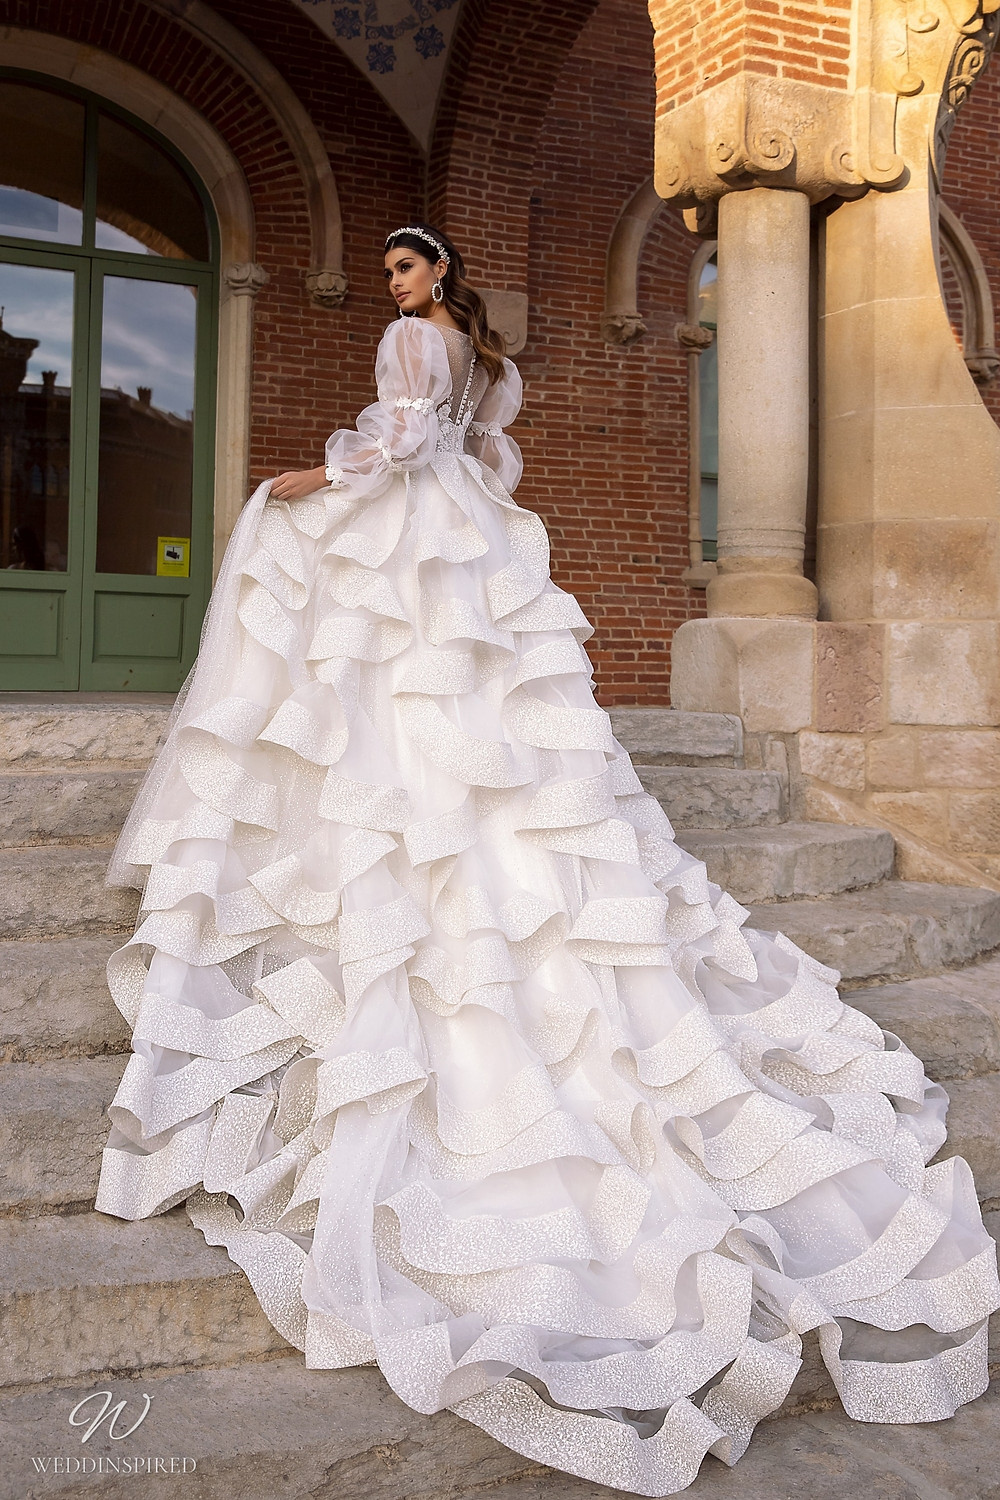 A Maks Mariano princess ball gown wedding dress with layered ruffle skirt and long tulle sleeves